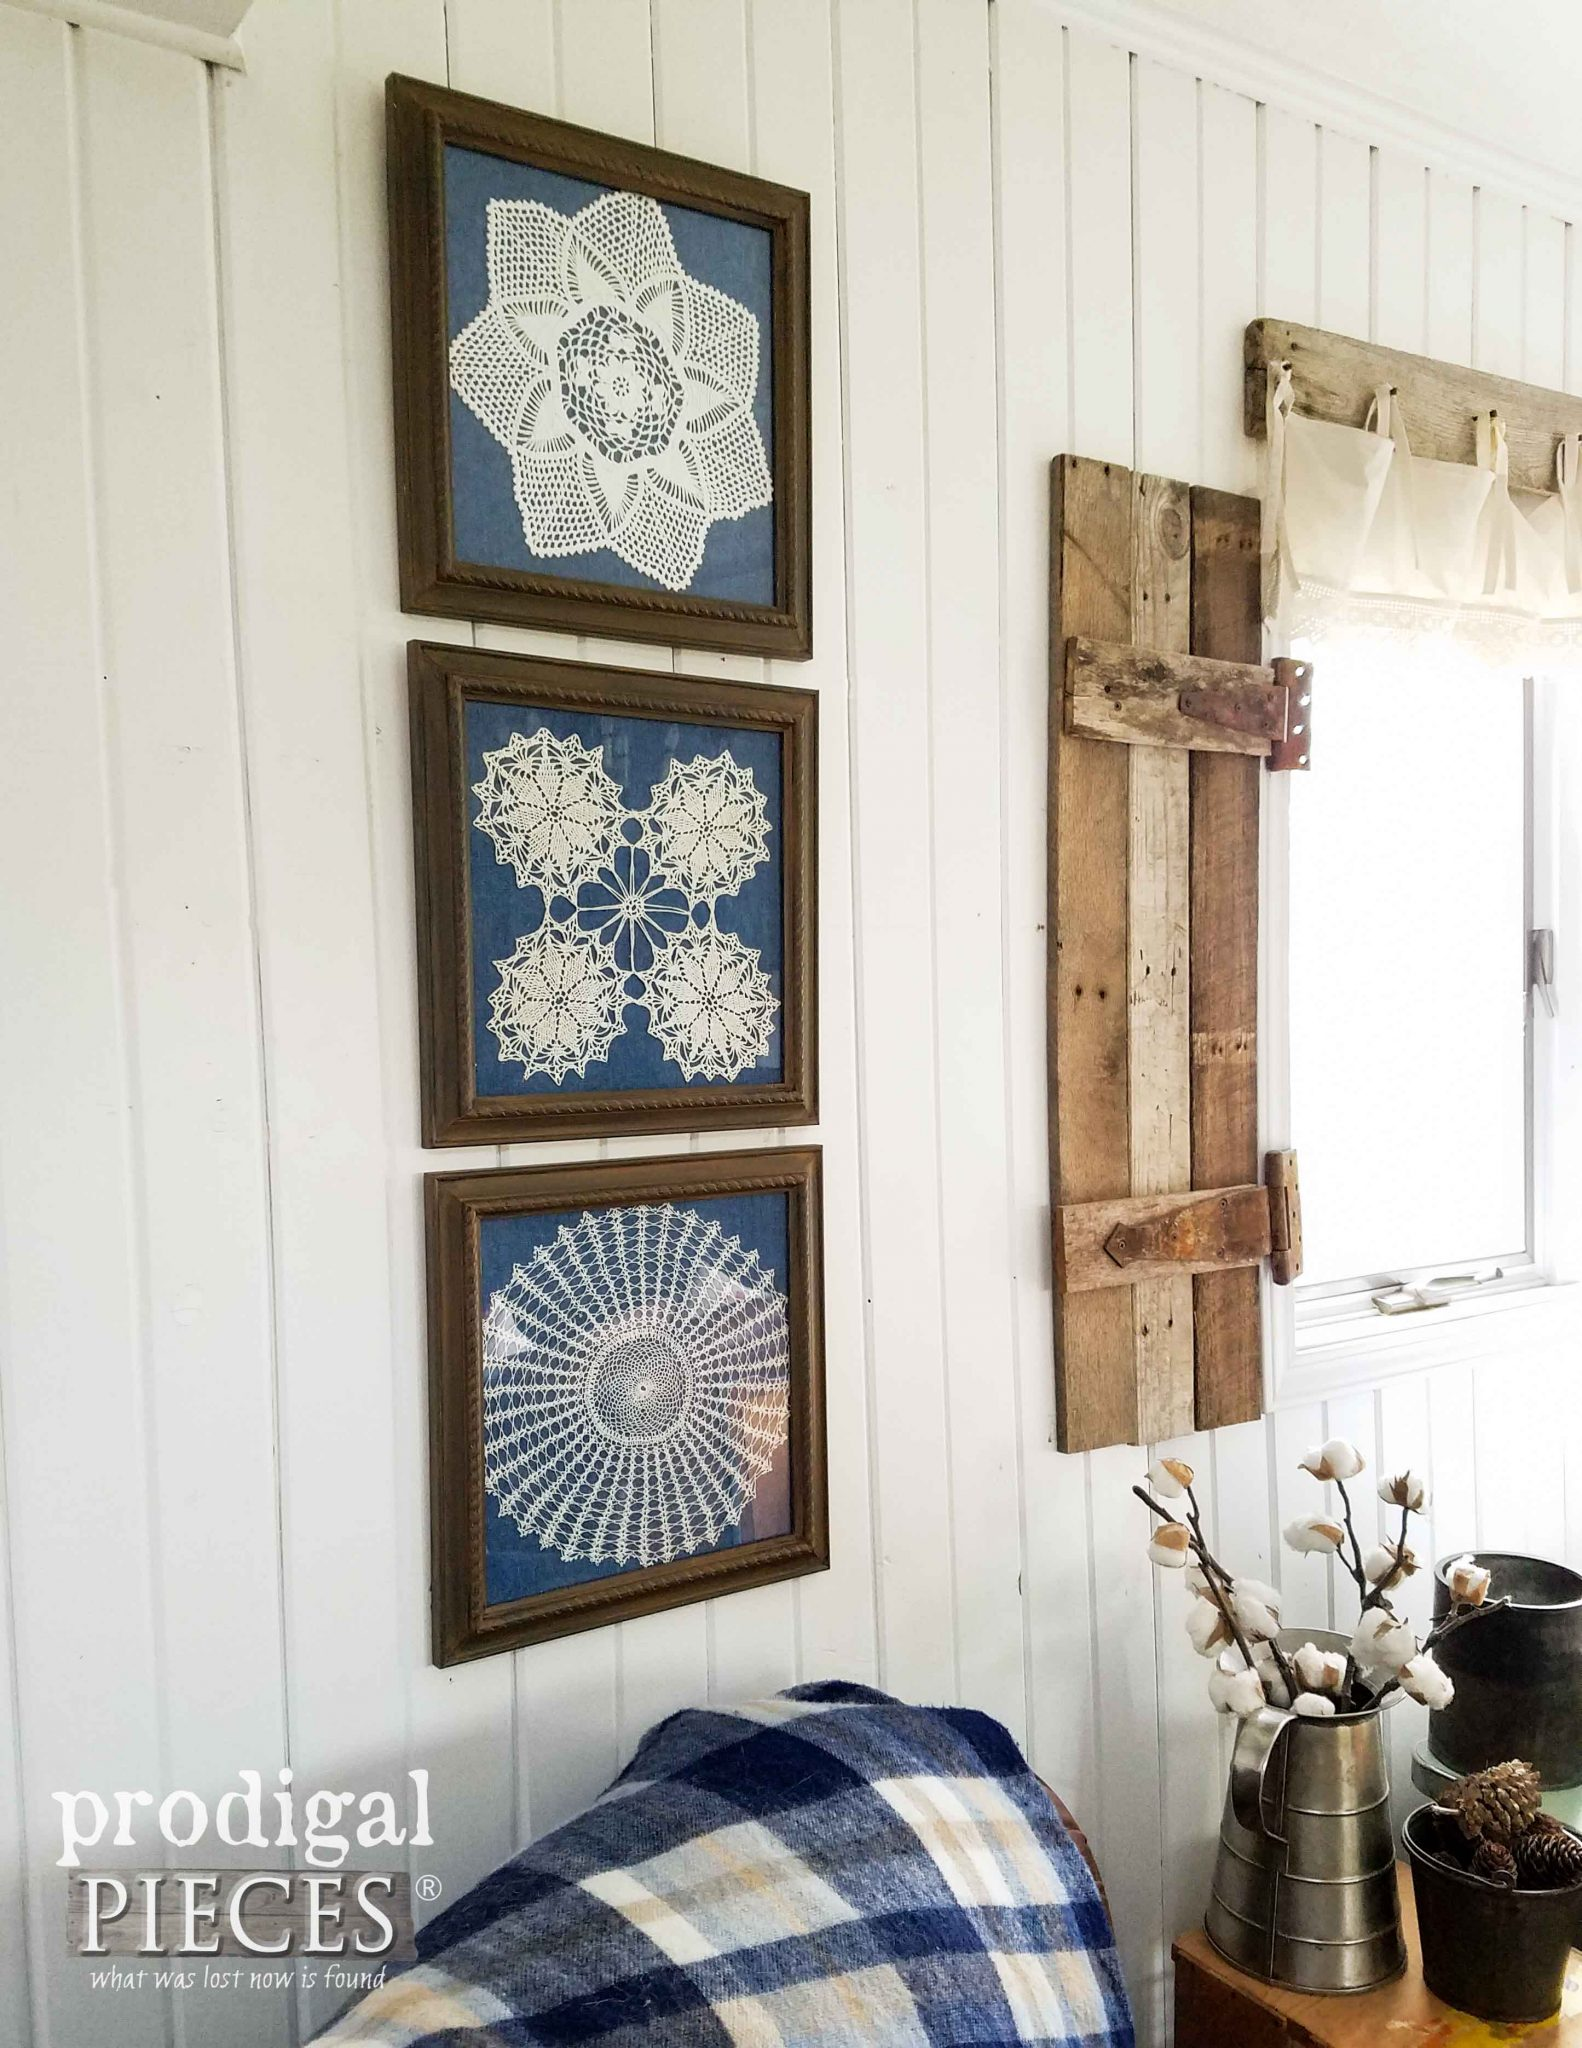 Best Framed Doily Wall Art From Curbside Finds Prodigal Pieces This Month